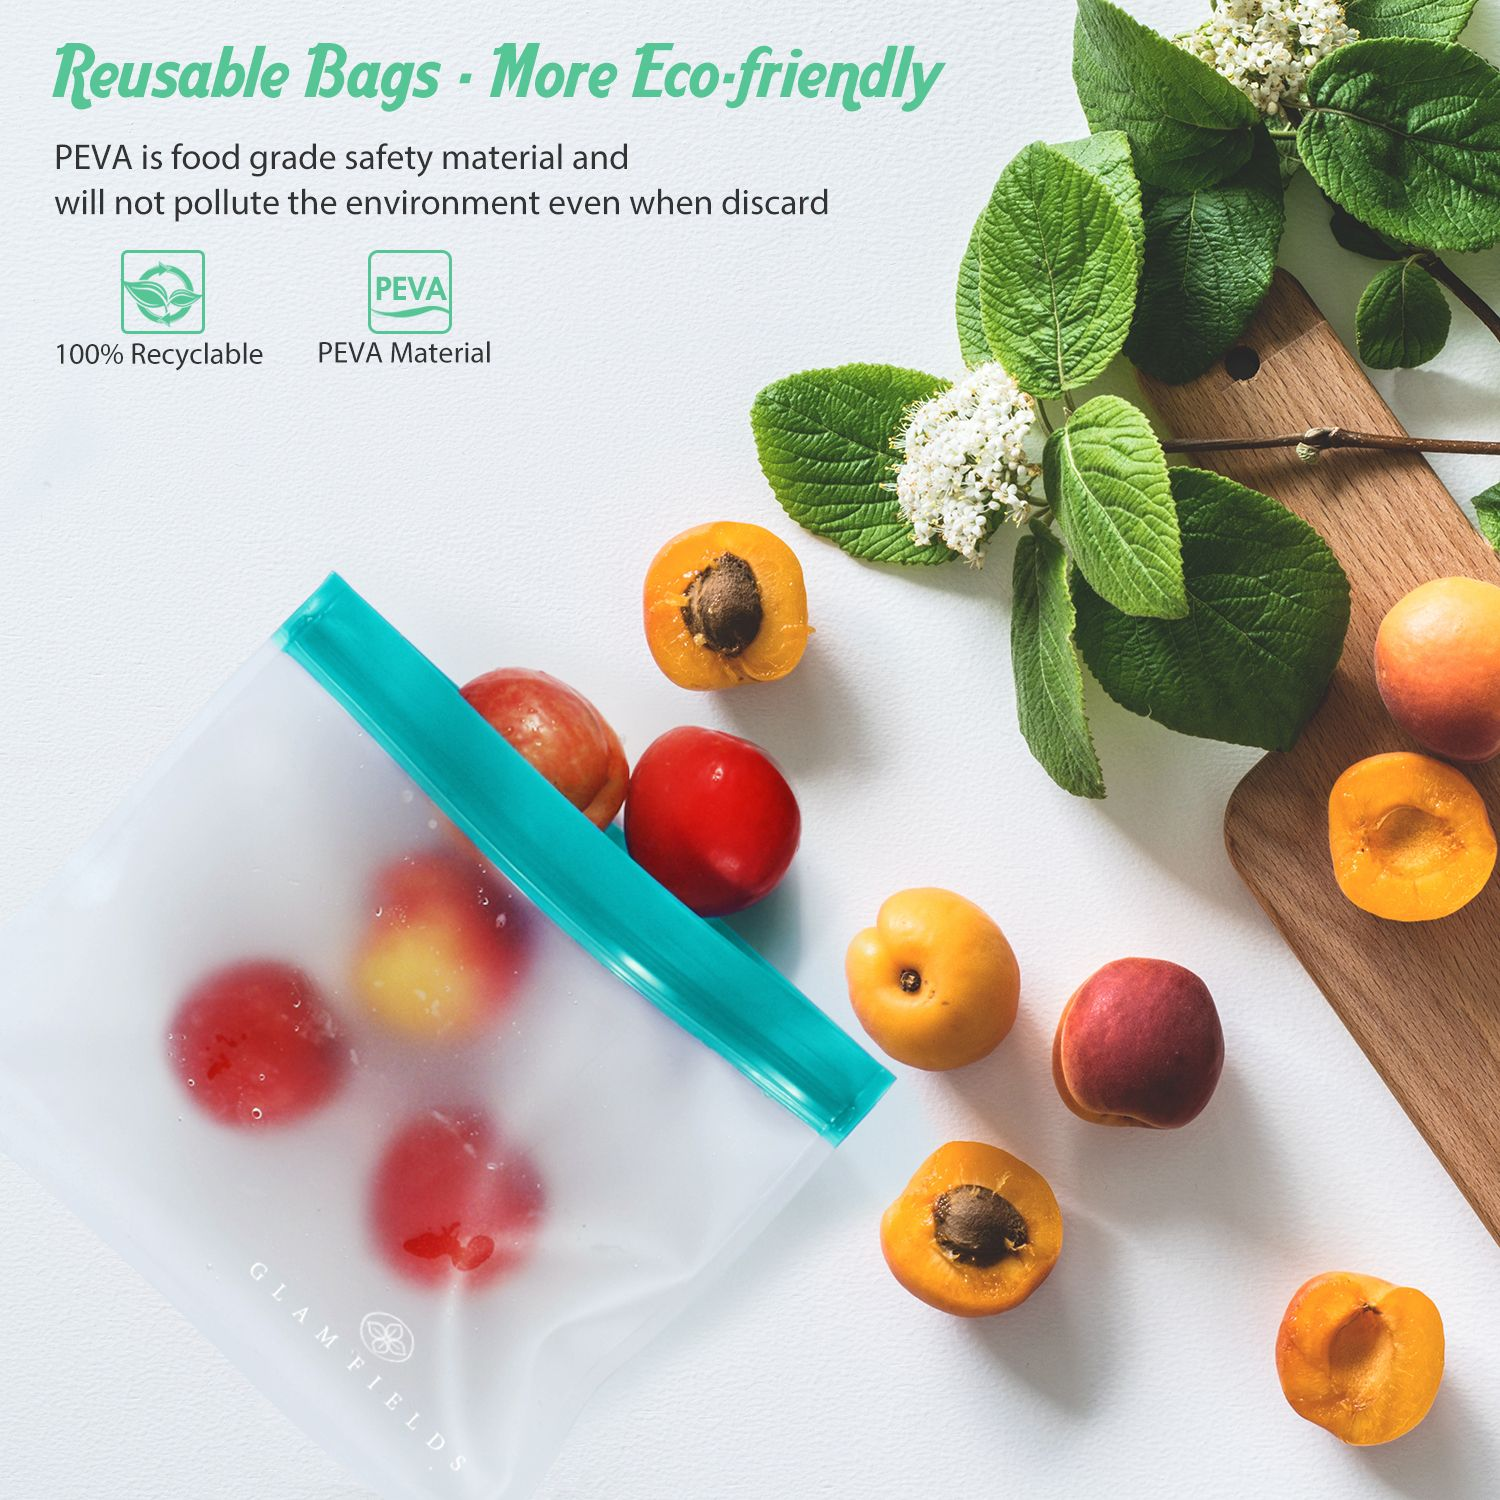 Use One Bag To Solve All Your Food Storage Problems Biodegradable Products Bag Storage Reusable Bags